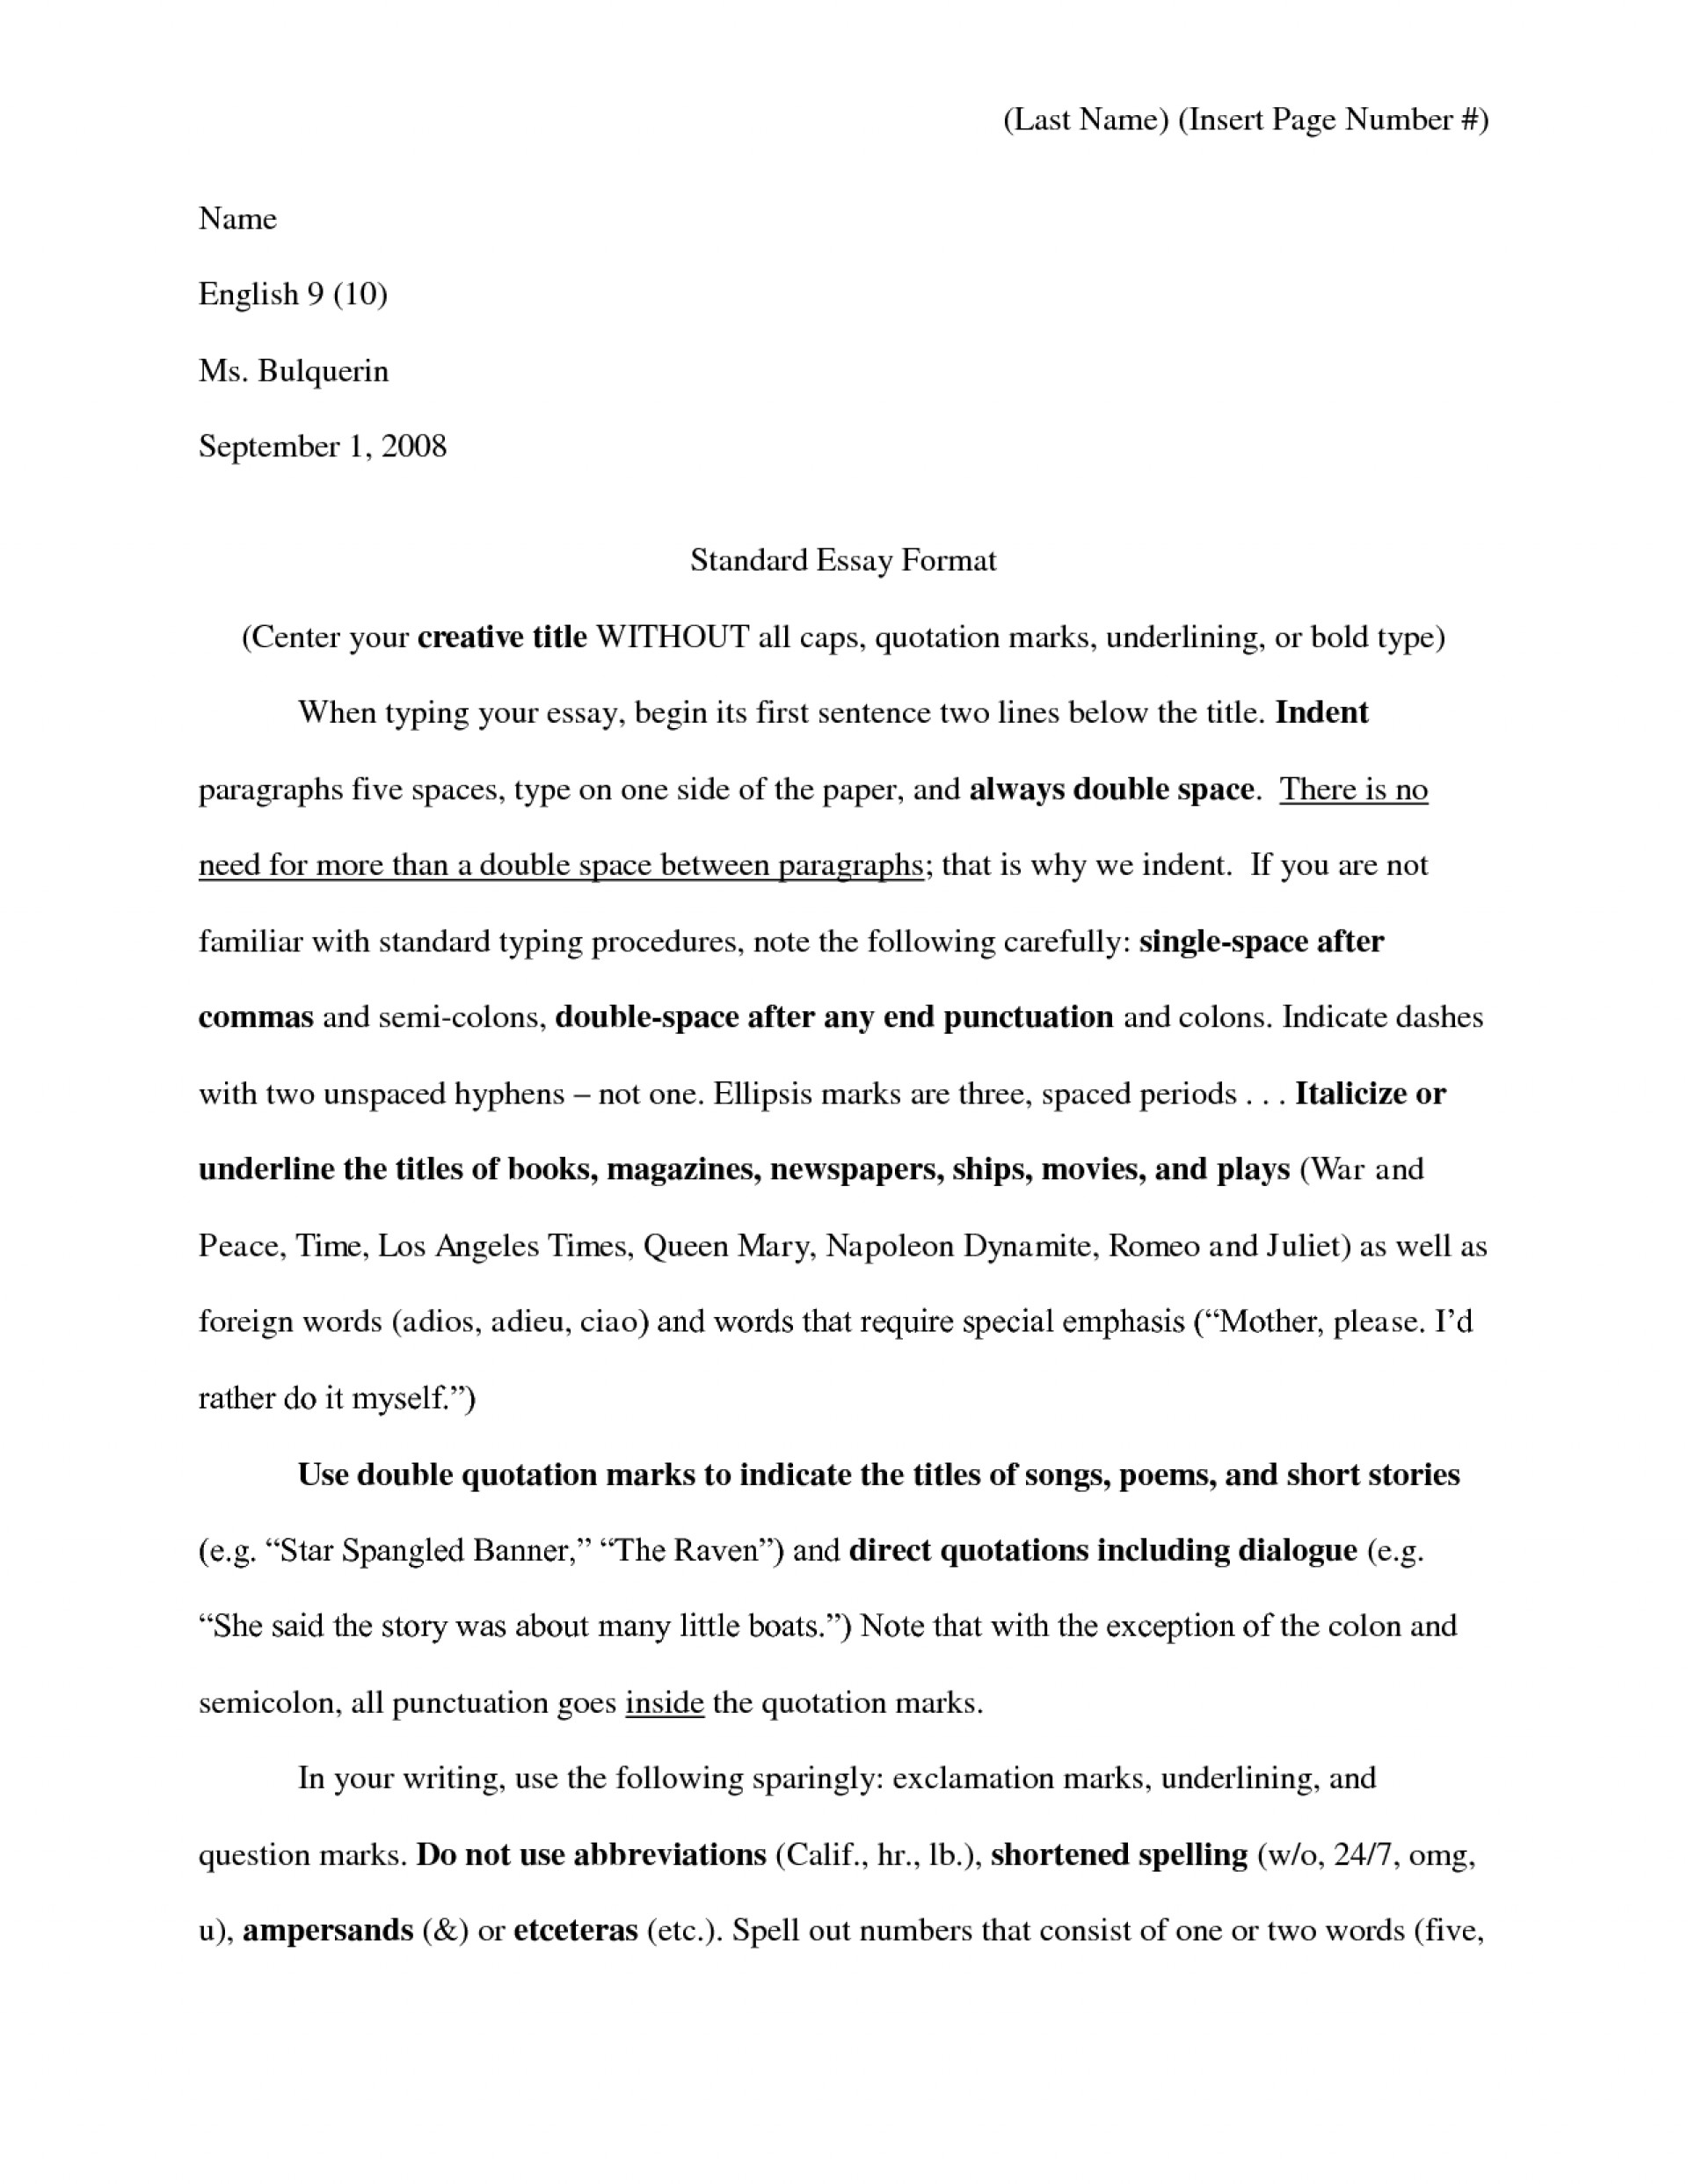 007 Format Of An Essay Awful Outline Apa Example Academic Conclusion Style 1920